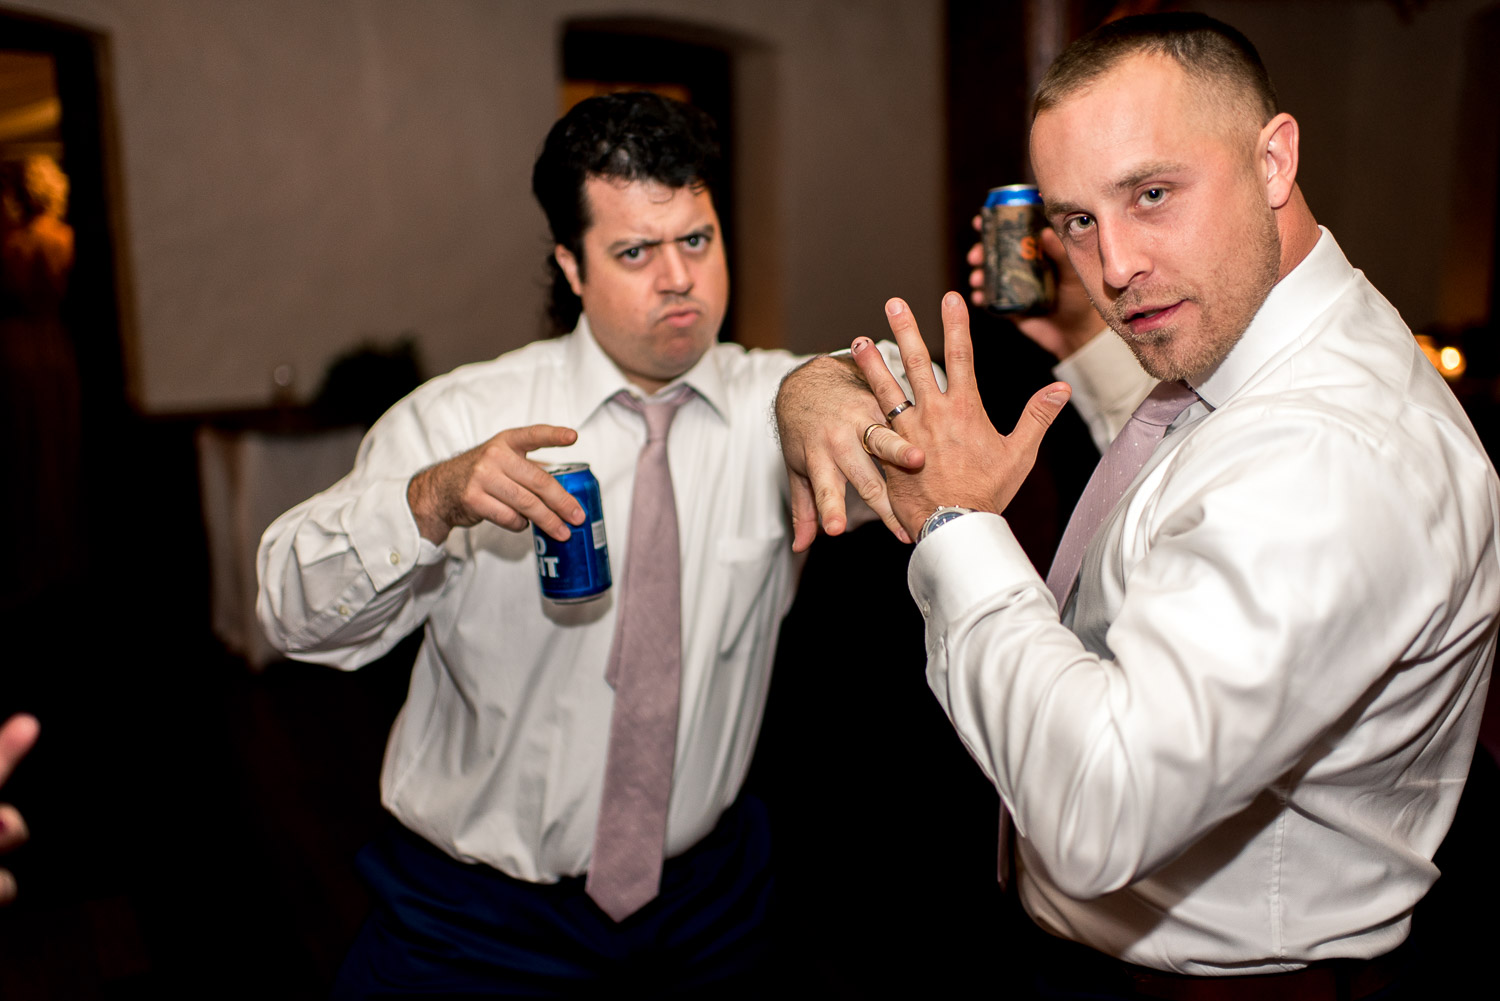 groom and groomsmen showing off rings